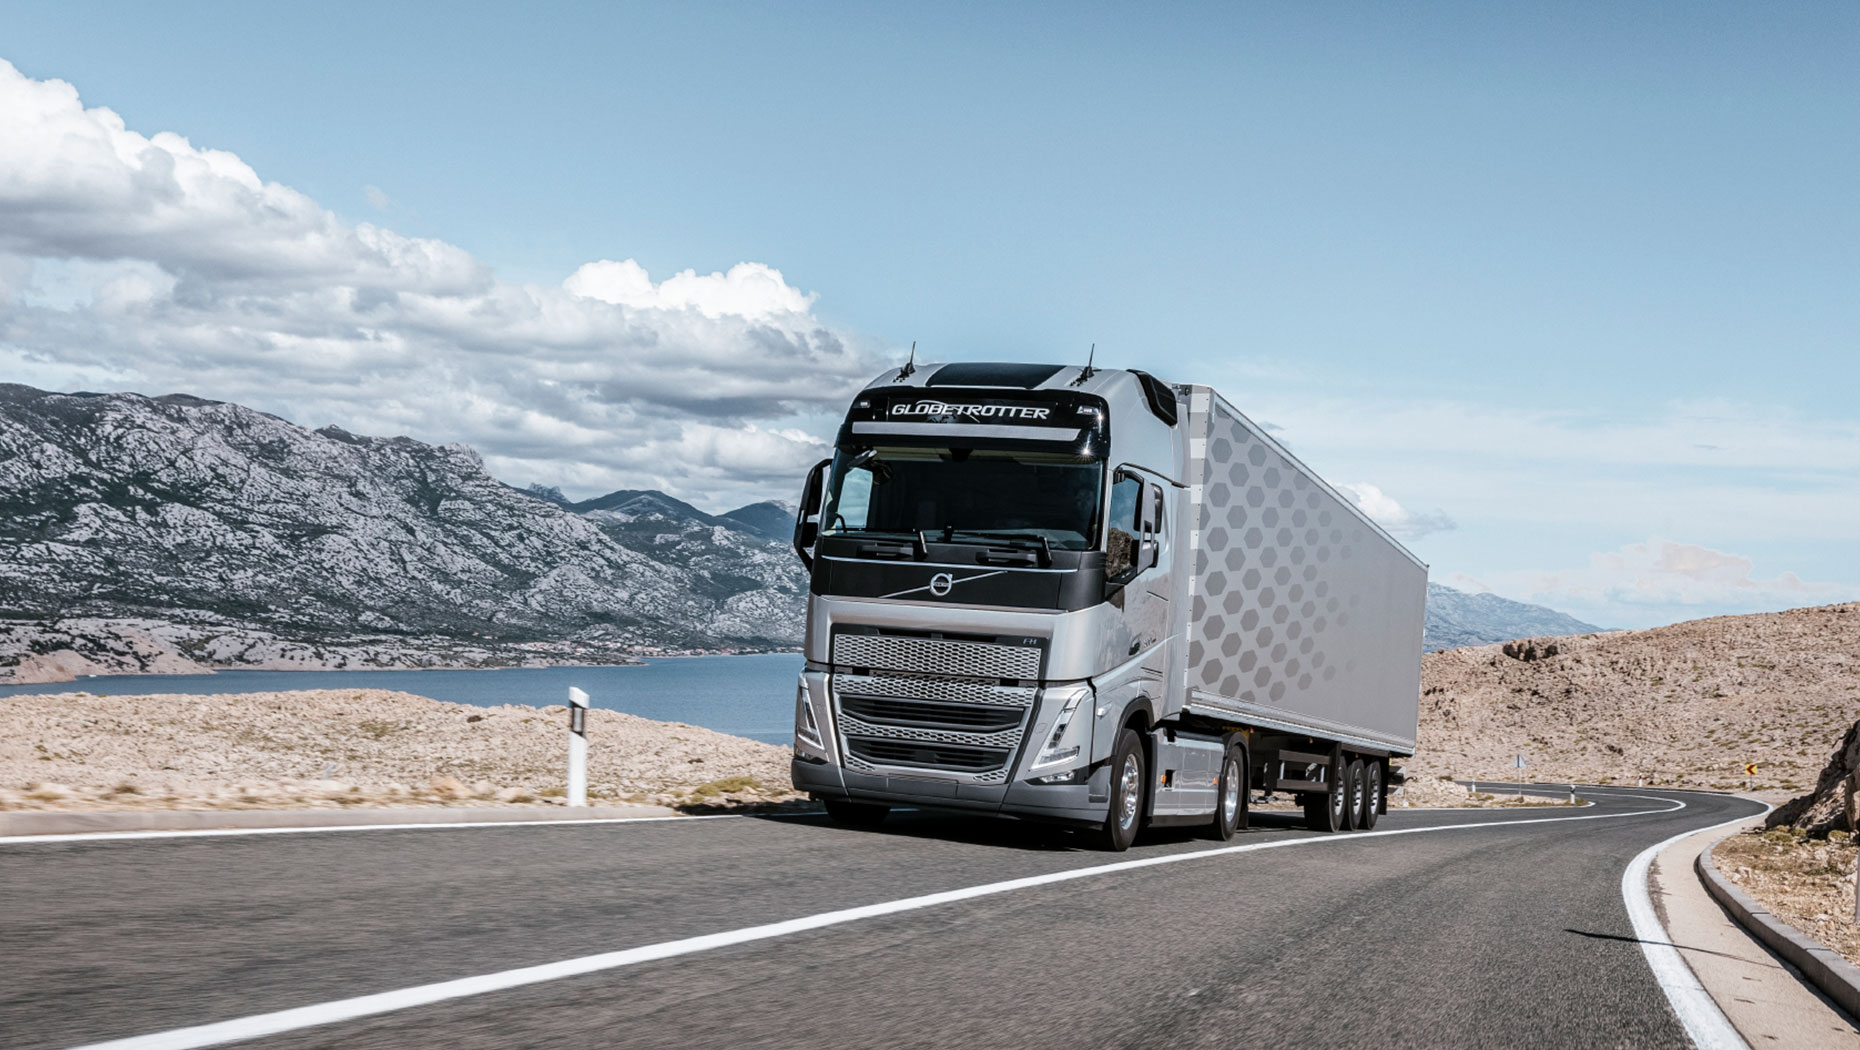 That Volvo FH with I-Save could slash the cost of fuel considerably